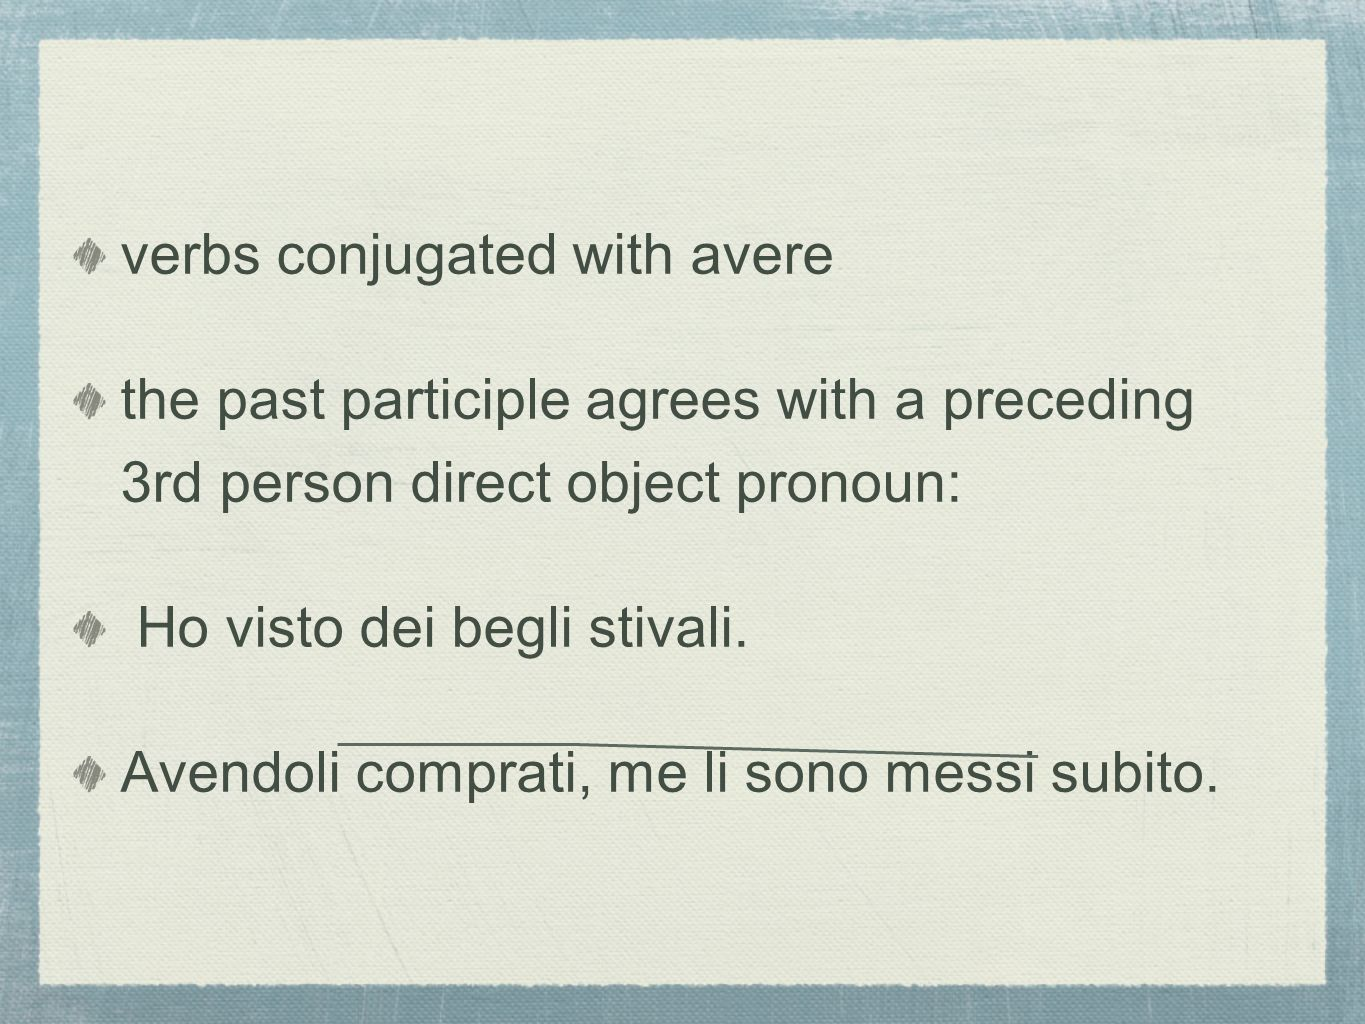 verbs conjugated with avere the past participle agrees with a preceding 3rd person direct object pronoun: Ho visto dei begli stivali. Avendoli comprat